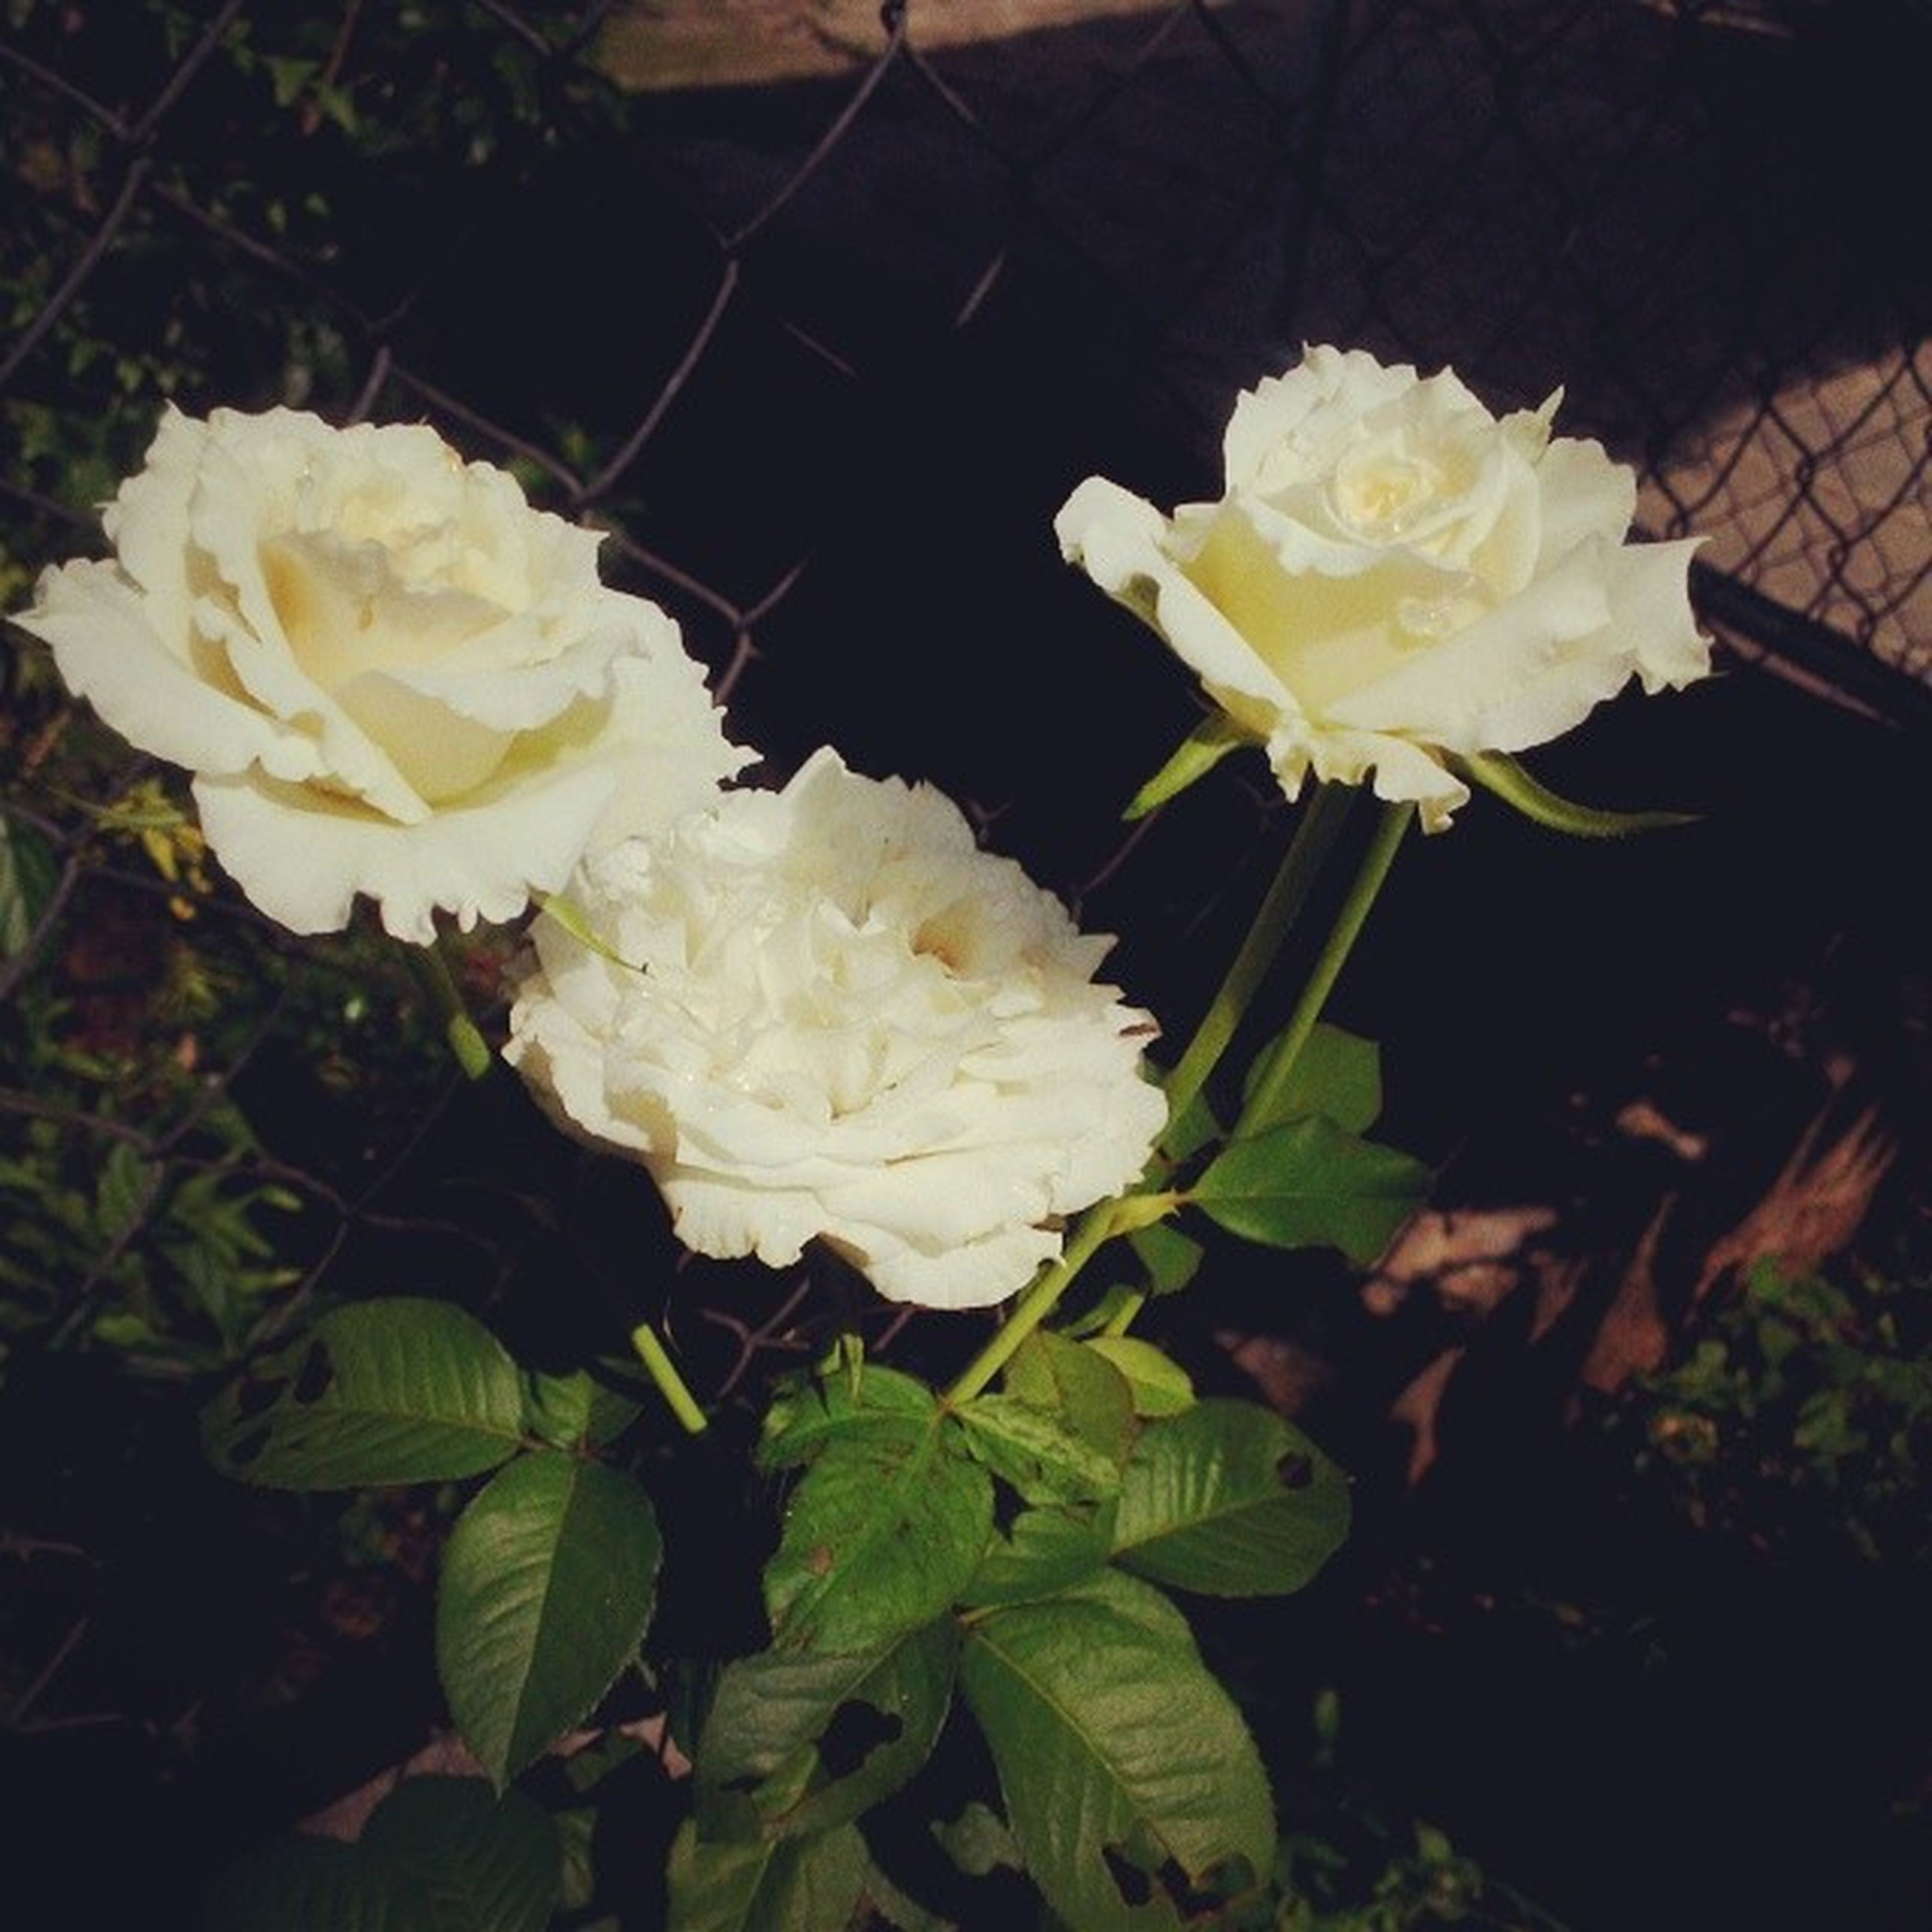 flower, petal, freshness, fragility, flower head, rose - flower, beauty in nature, blooming, growth, white color, close-up, nature, plant, leaf, yellow, high angle view, in bloom, blossom, rose, bunch of flowers